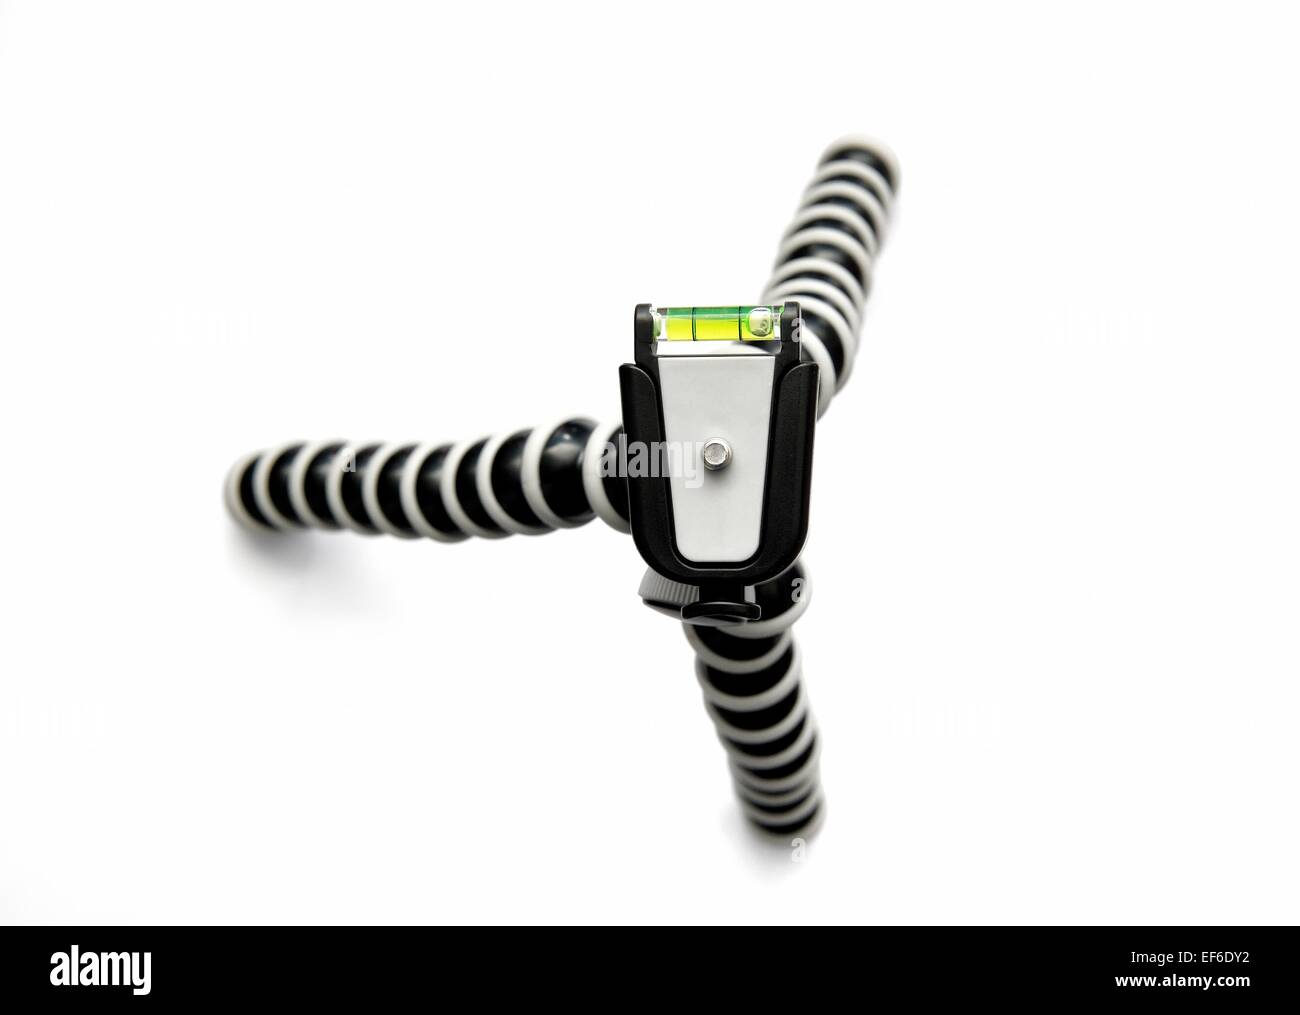 A Joby GorillaPod SLR-Zoom Tripod for SLR Cameras with Ball head - Stock Image